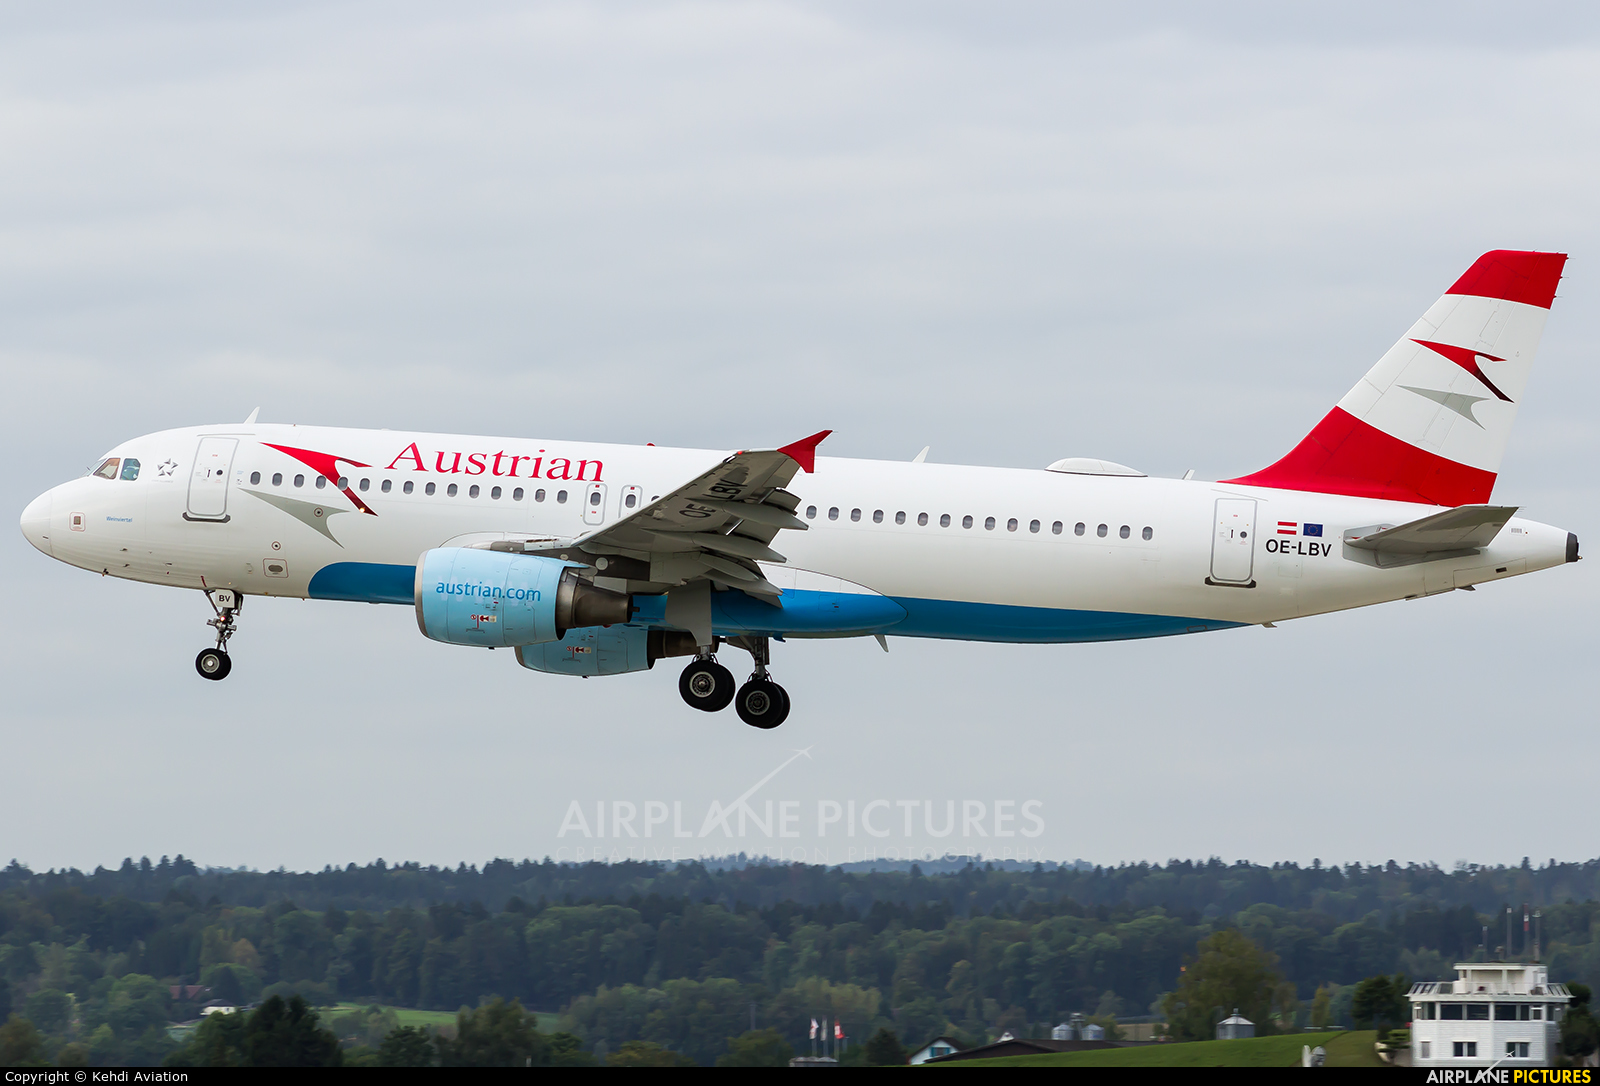 Austrian Airlines/Arrows/Tyrolean OE-LBV aircraft at Zurich